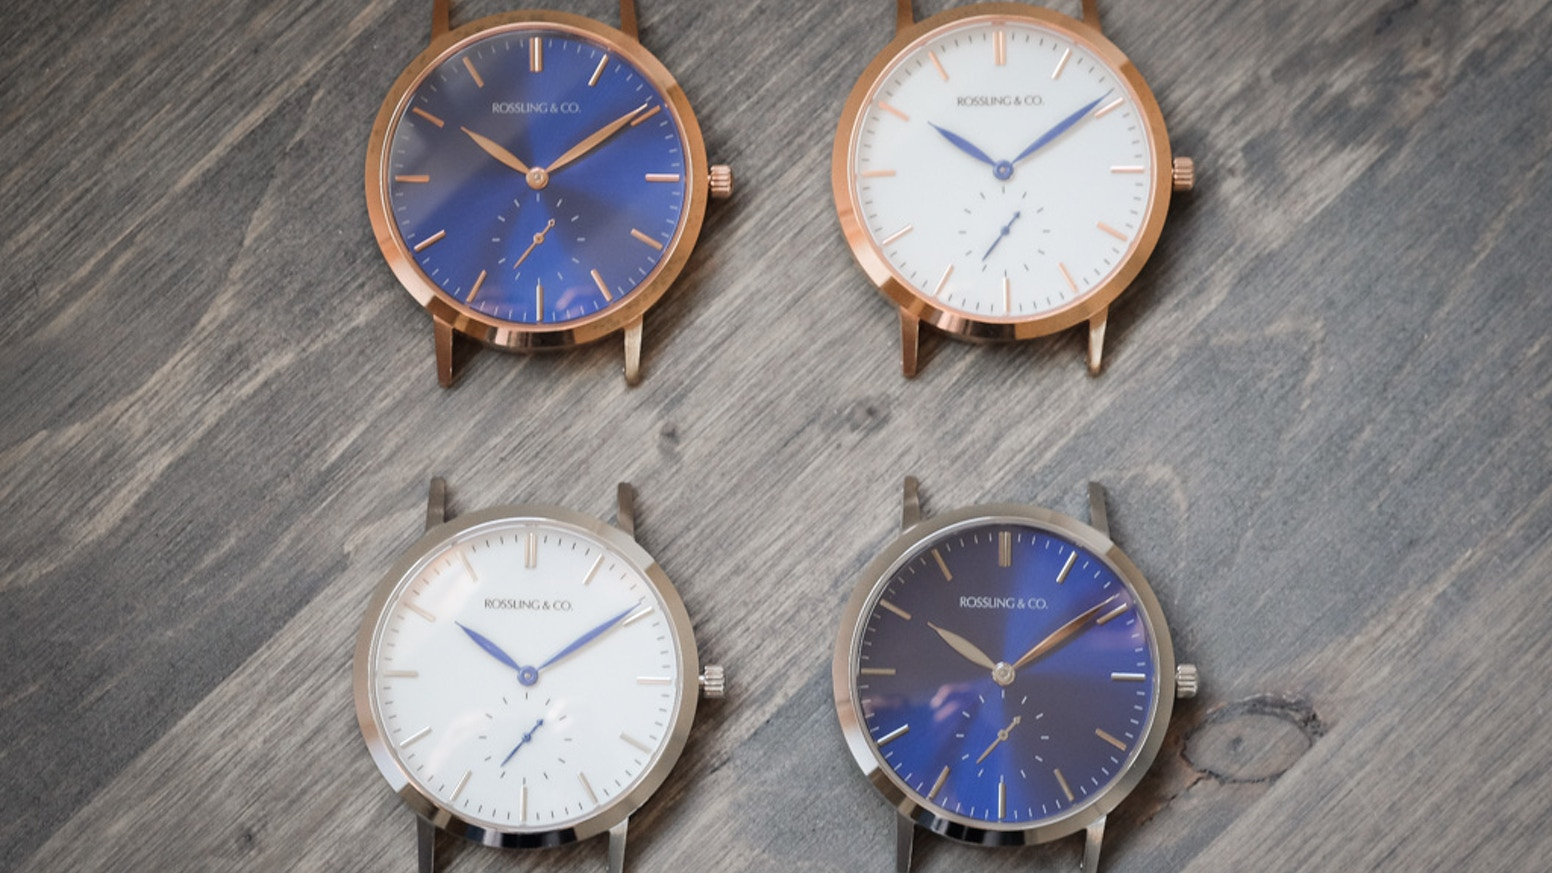 Versatile, stylish and affordable quality. With unique tweed and leather straps.